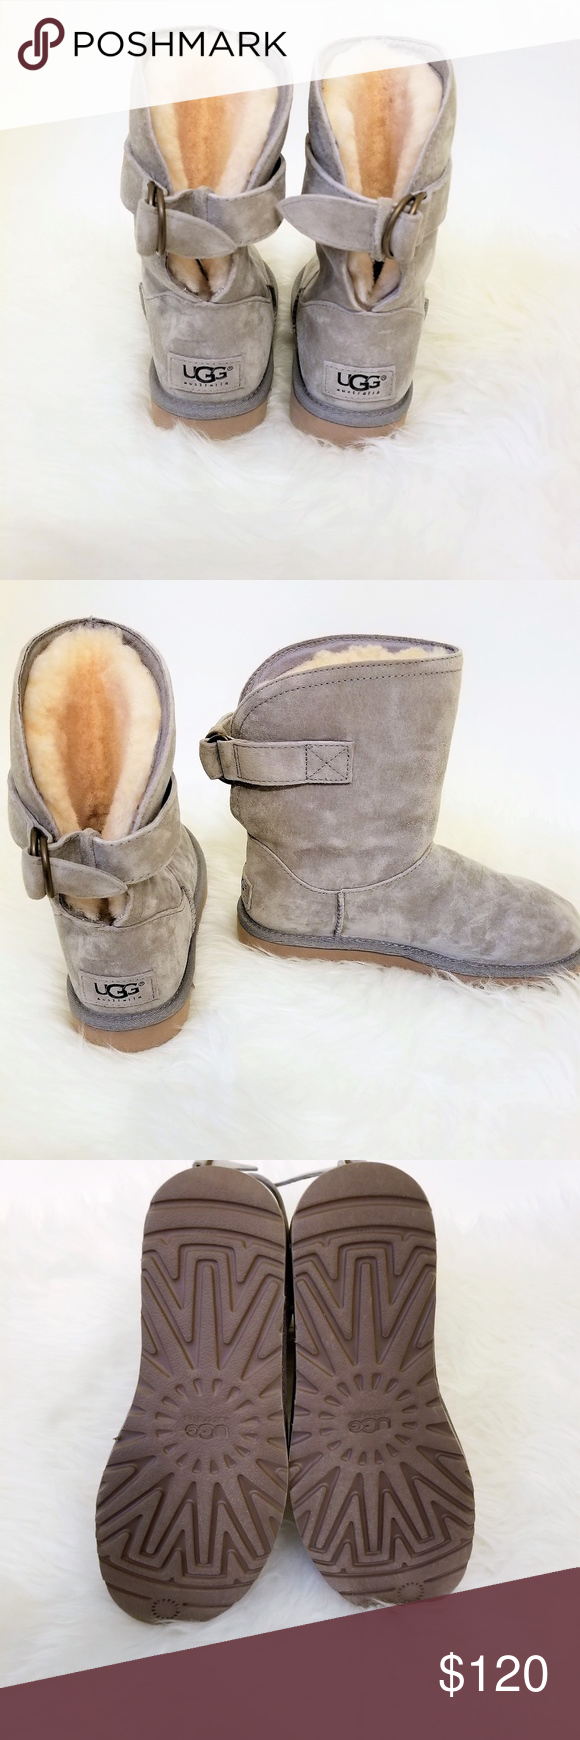 99871eb2e32 UGG Remora bootie UGG remora bootie Pull on these water resistant ...